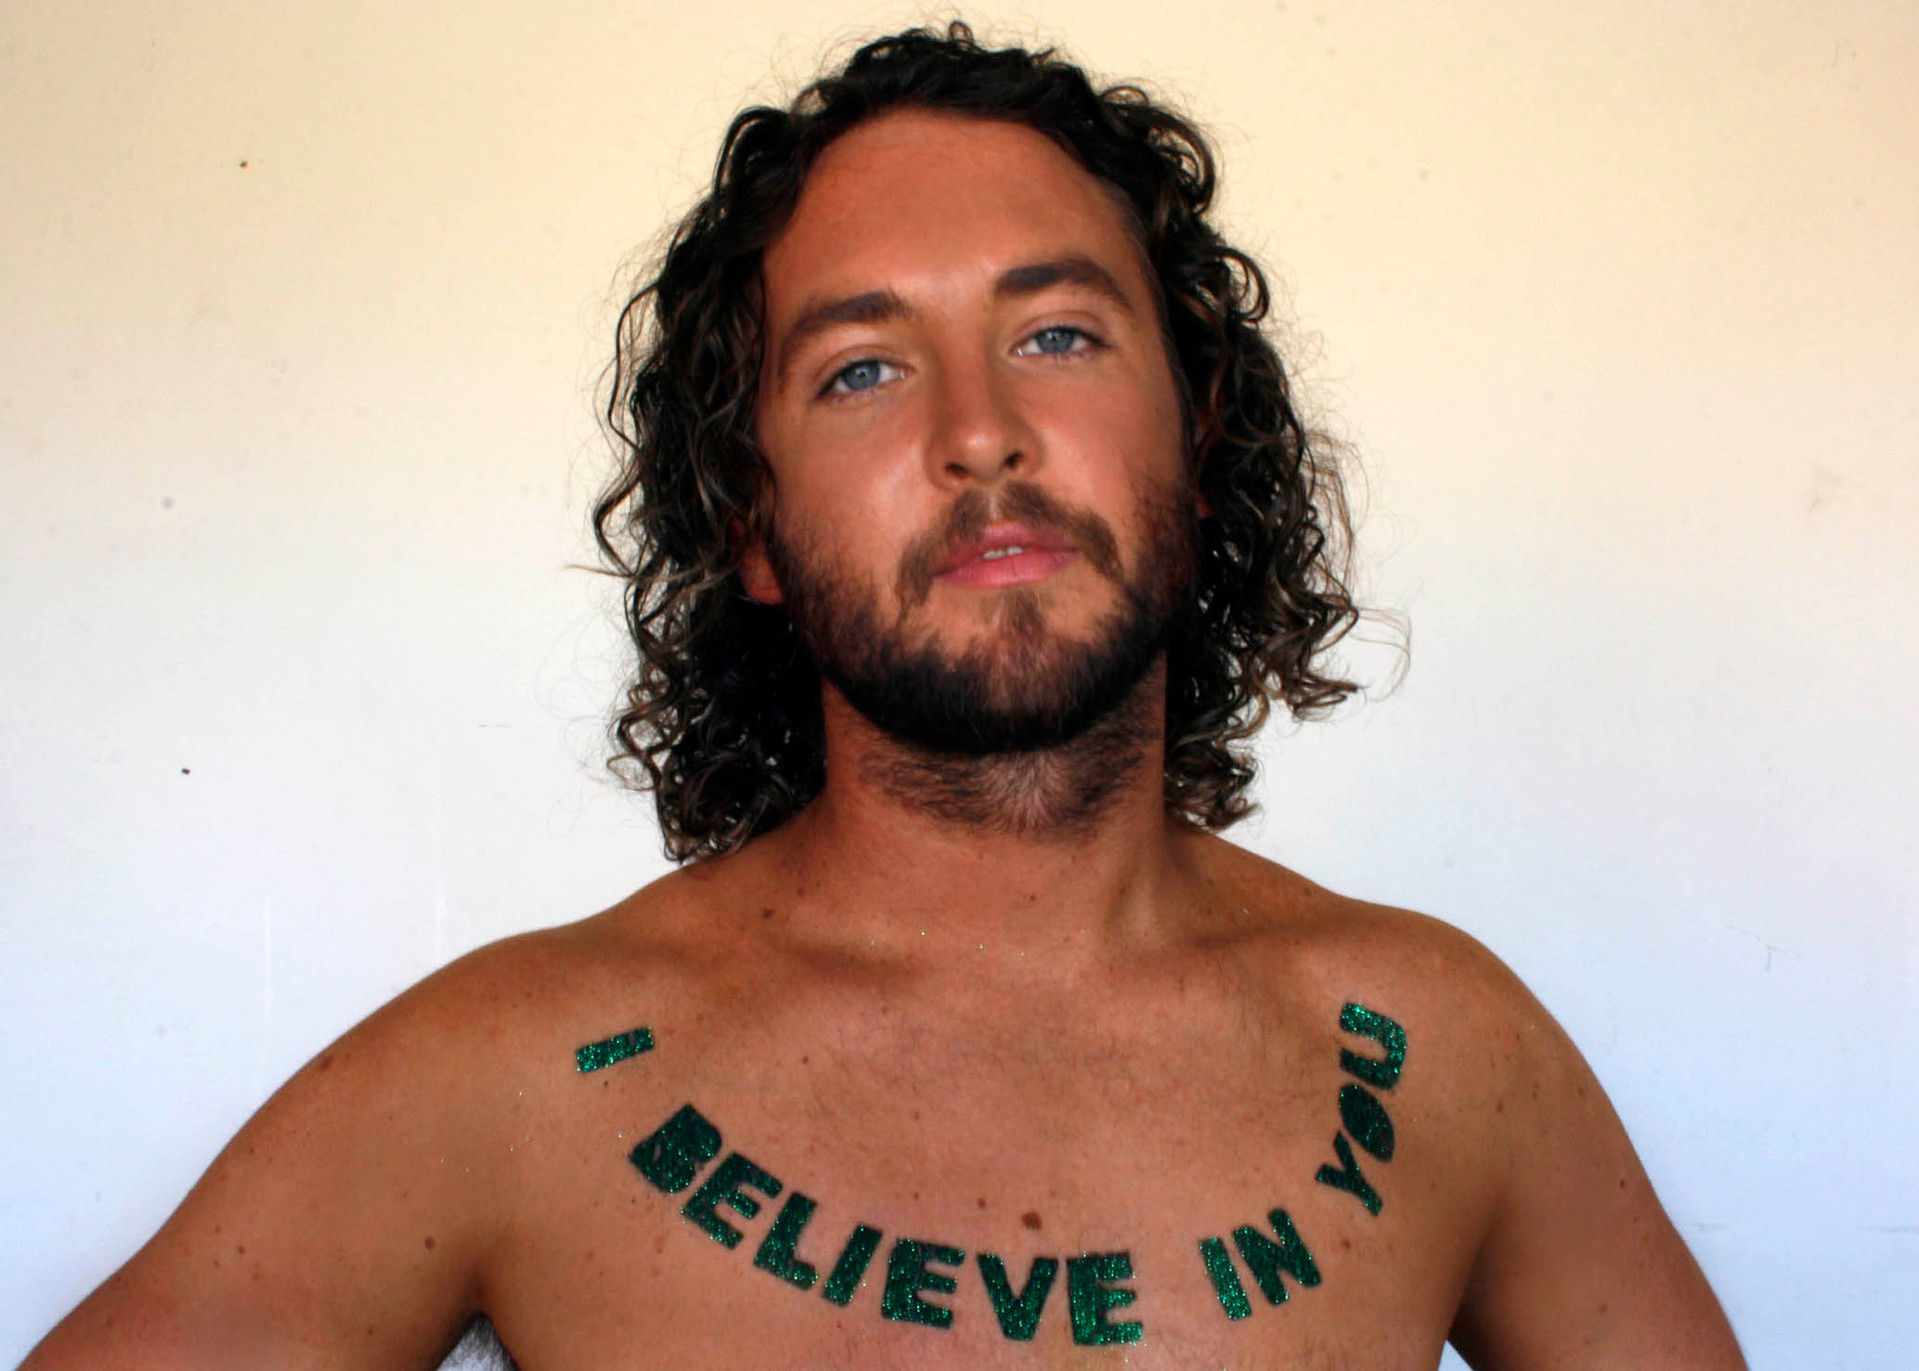 Liam Benson I BELIEVE IN YOU, 2007 61x91cm photograph assisted by Anastasia Zaravinos